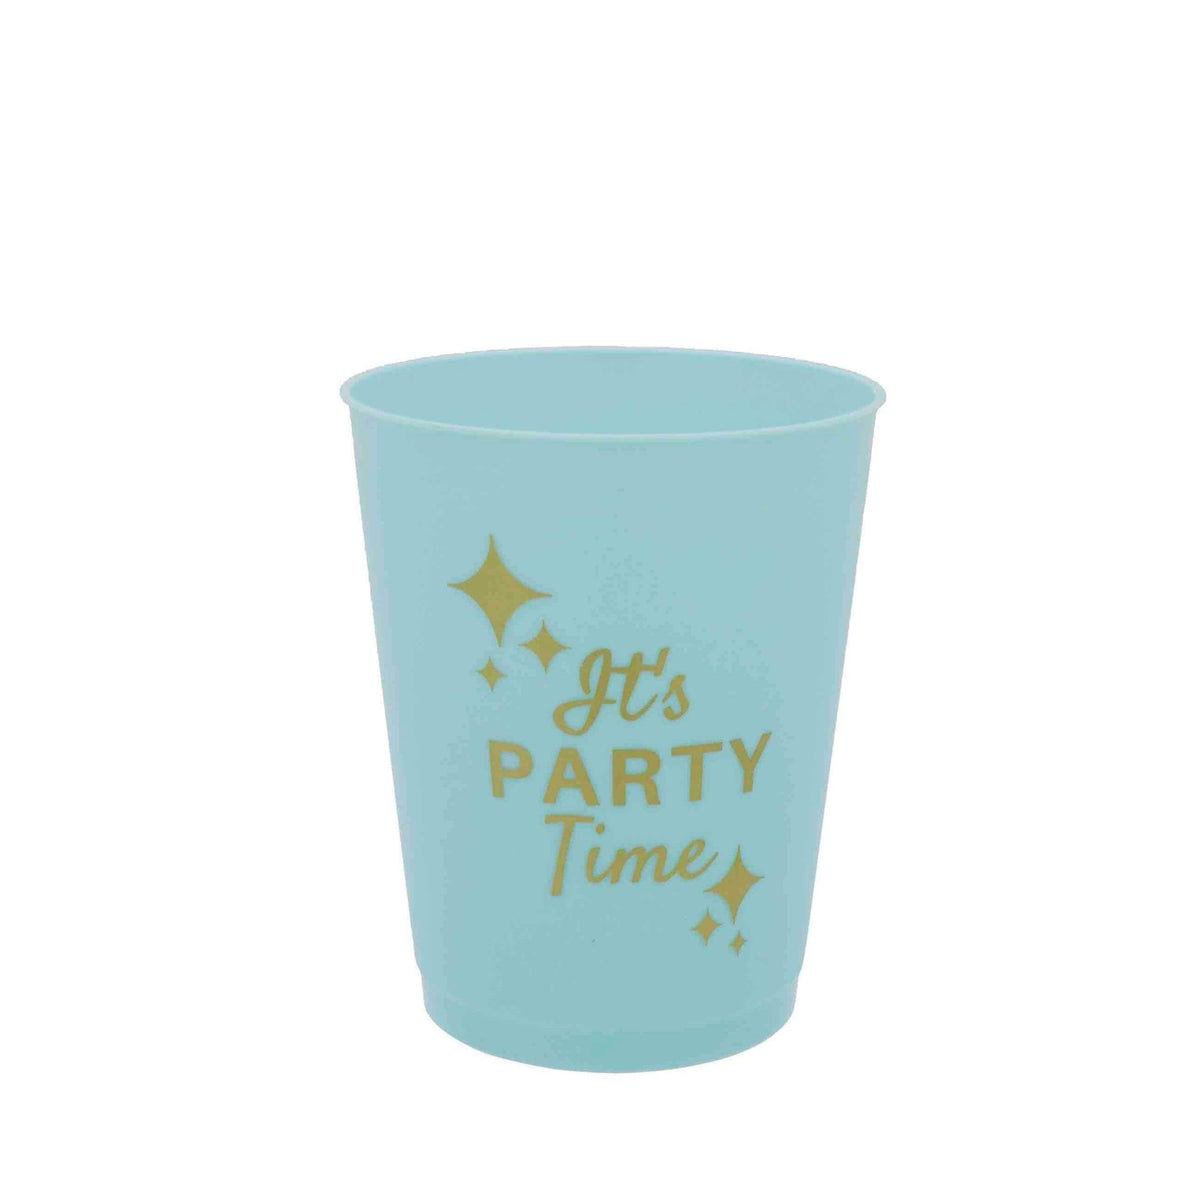 It's Party Time Cup Set of 6